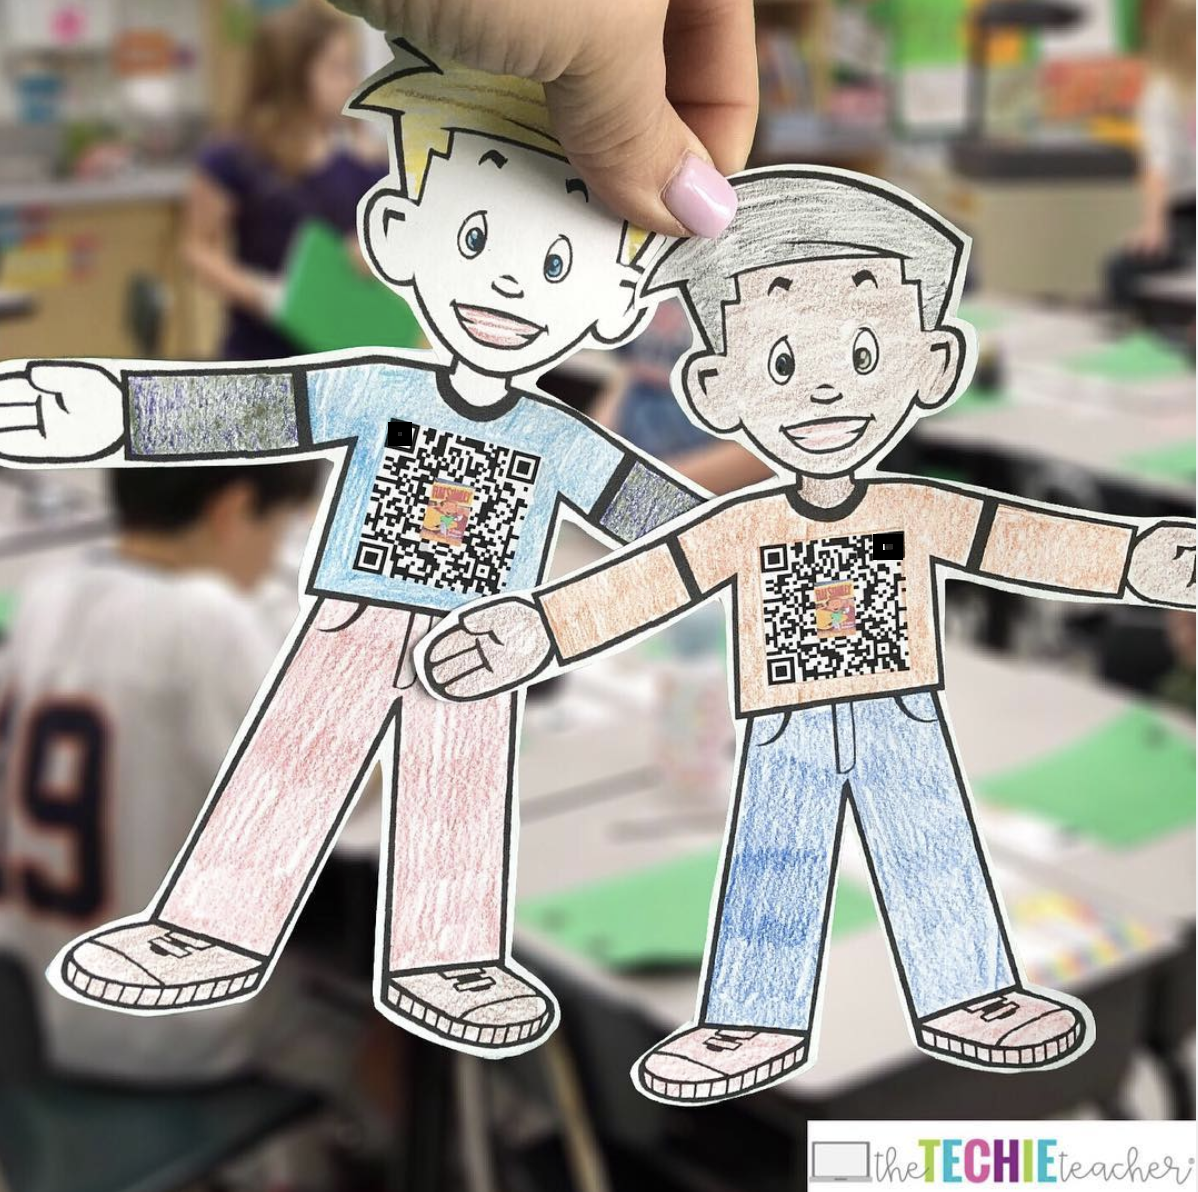 Flat Stanley 2.0 has a QR Code that leads to a collaborative Wakelet collection!